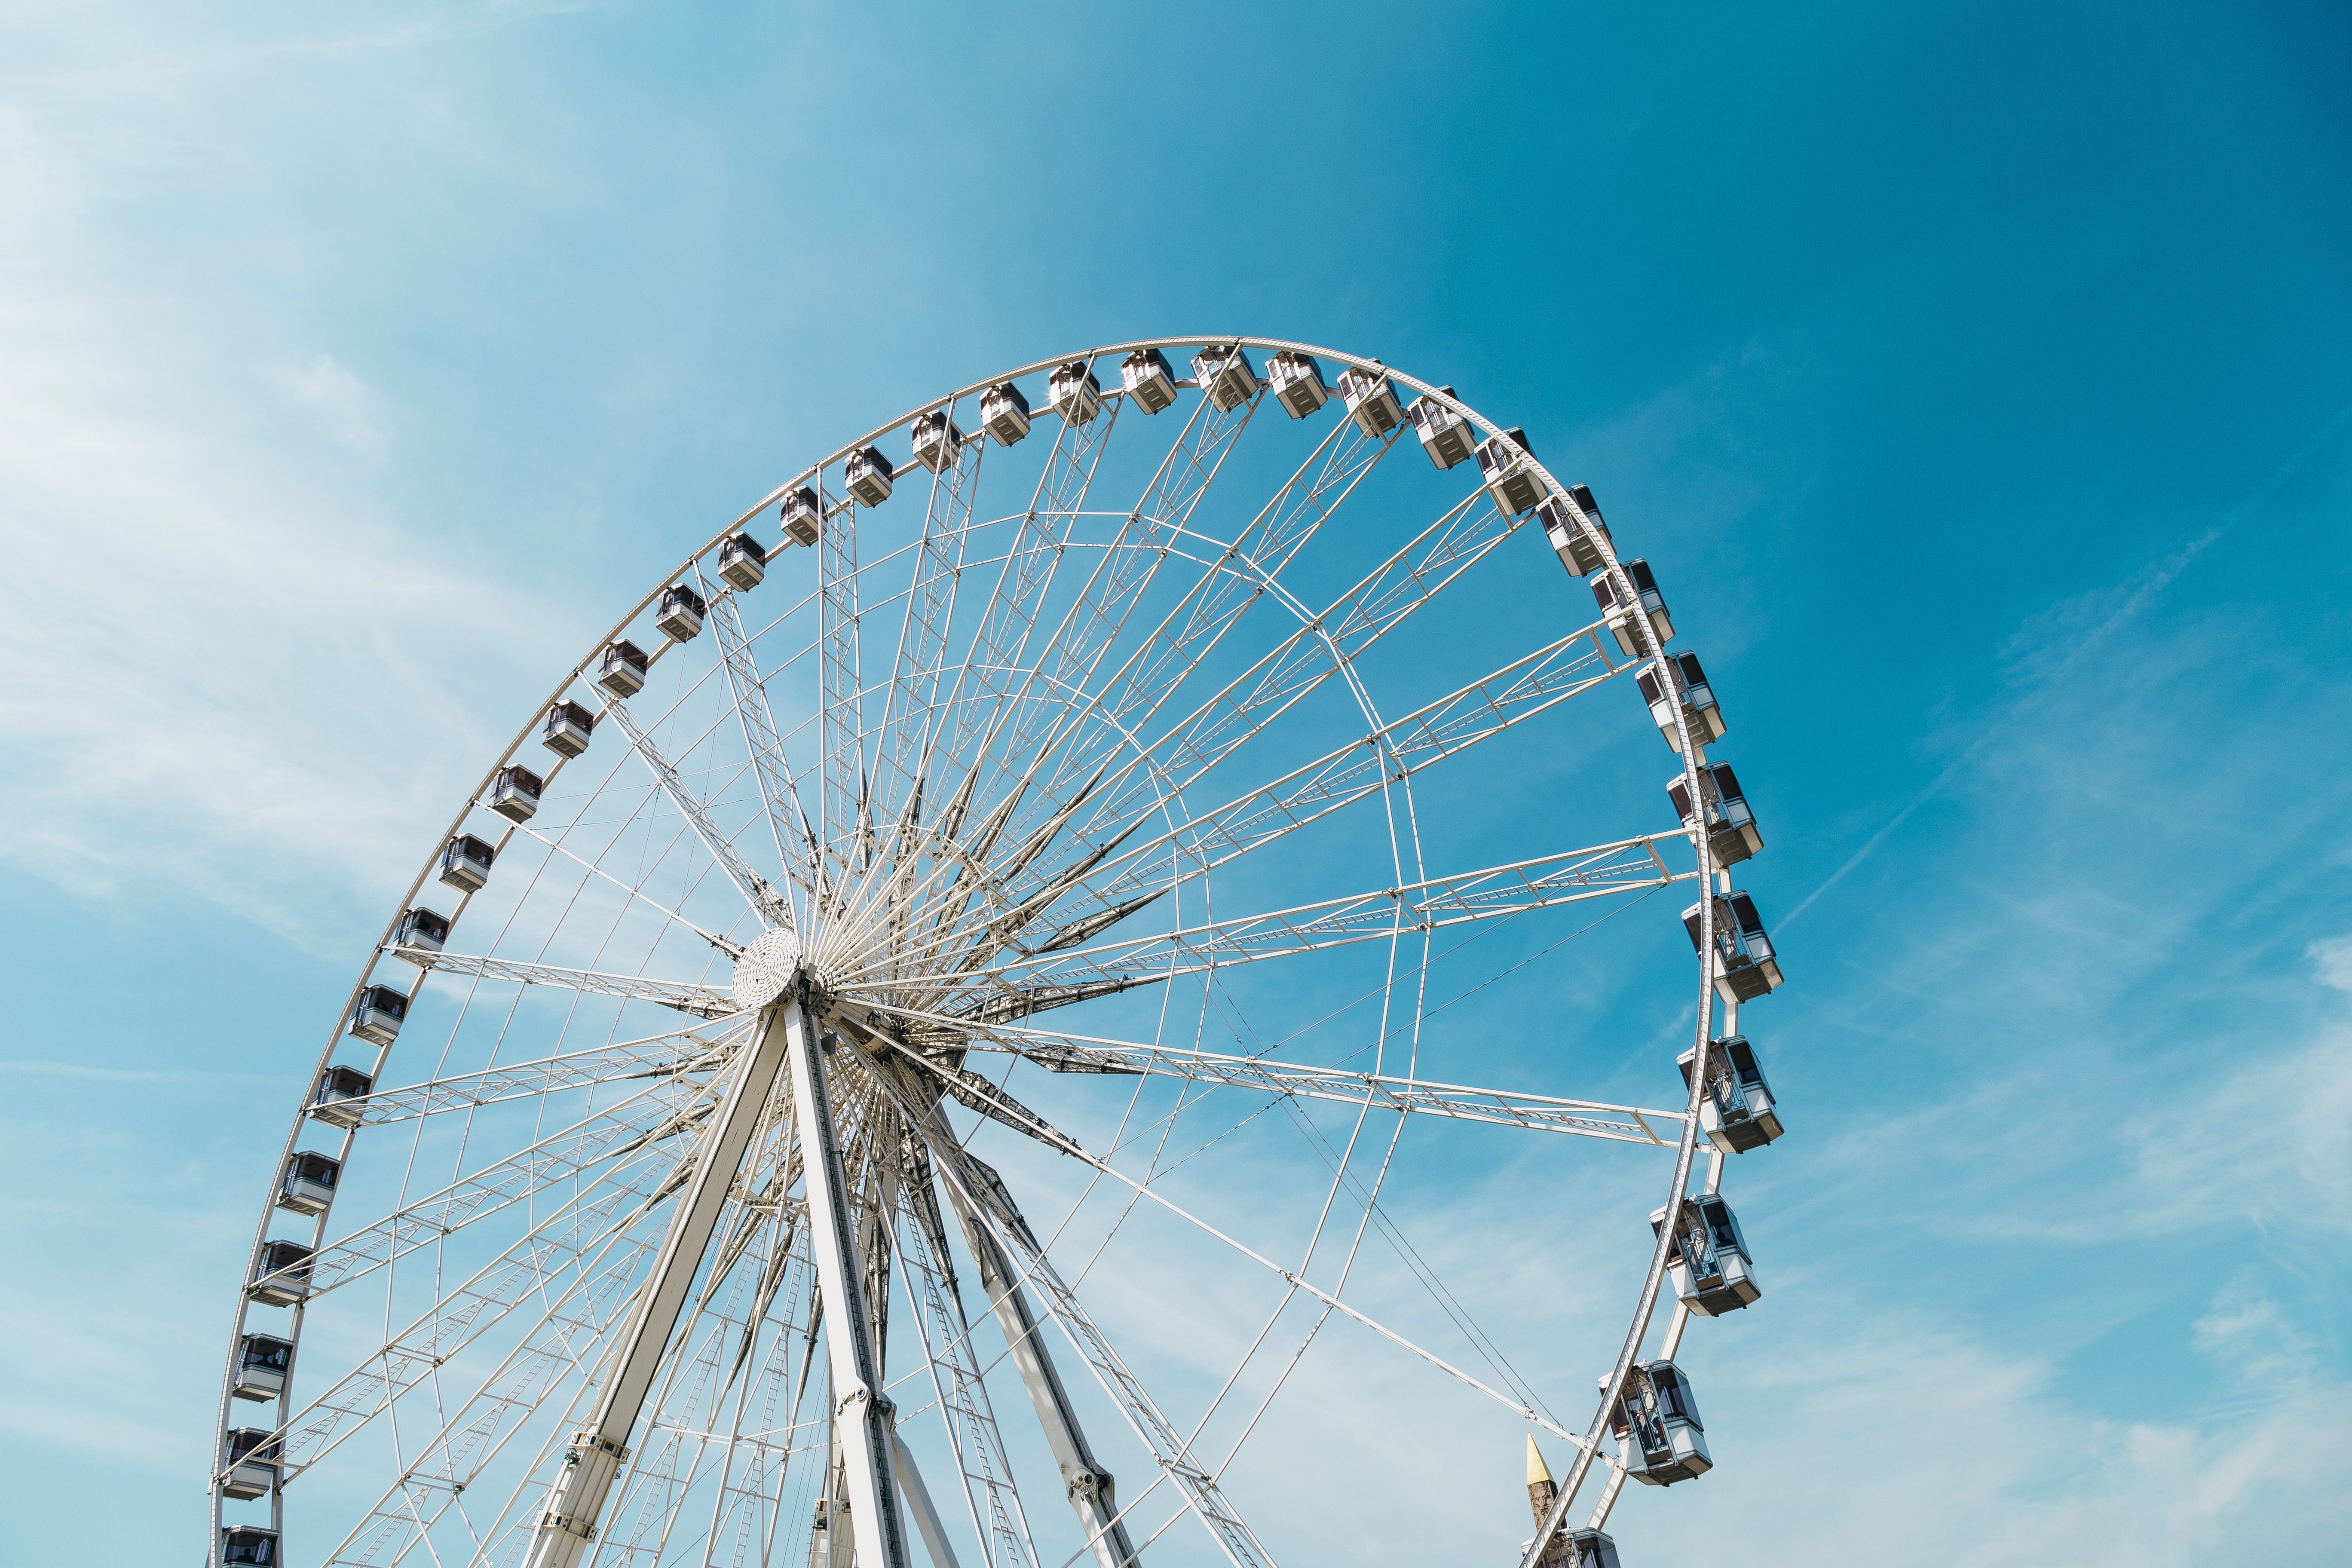 A large Ferris Wheel against a blue sky in Paris